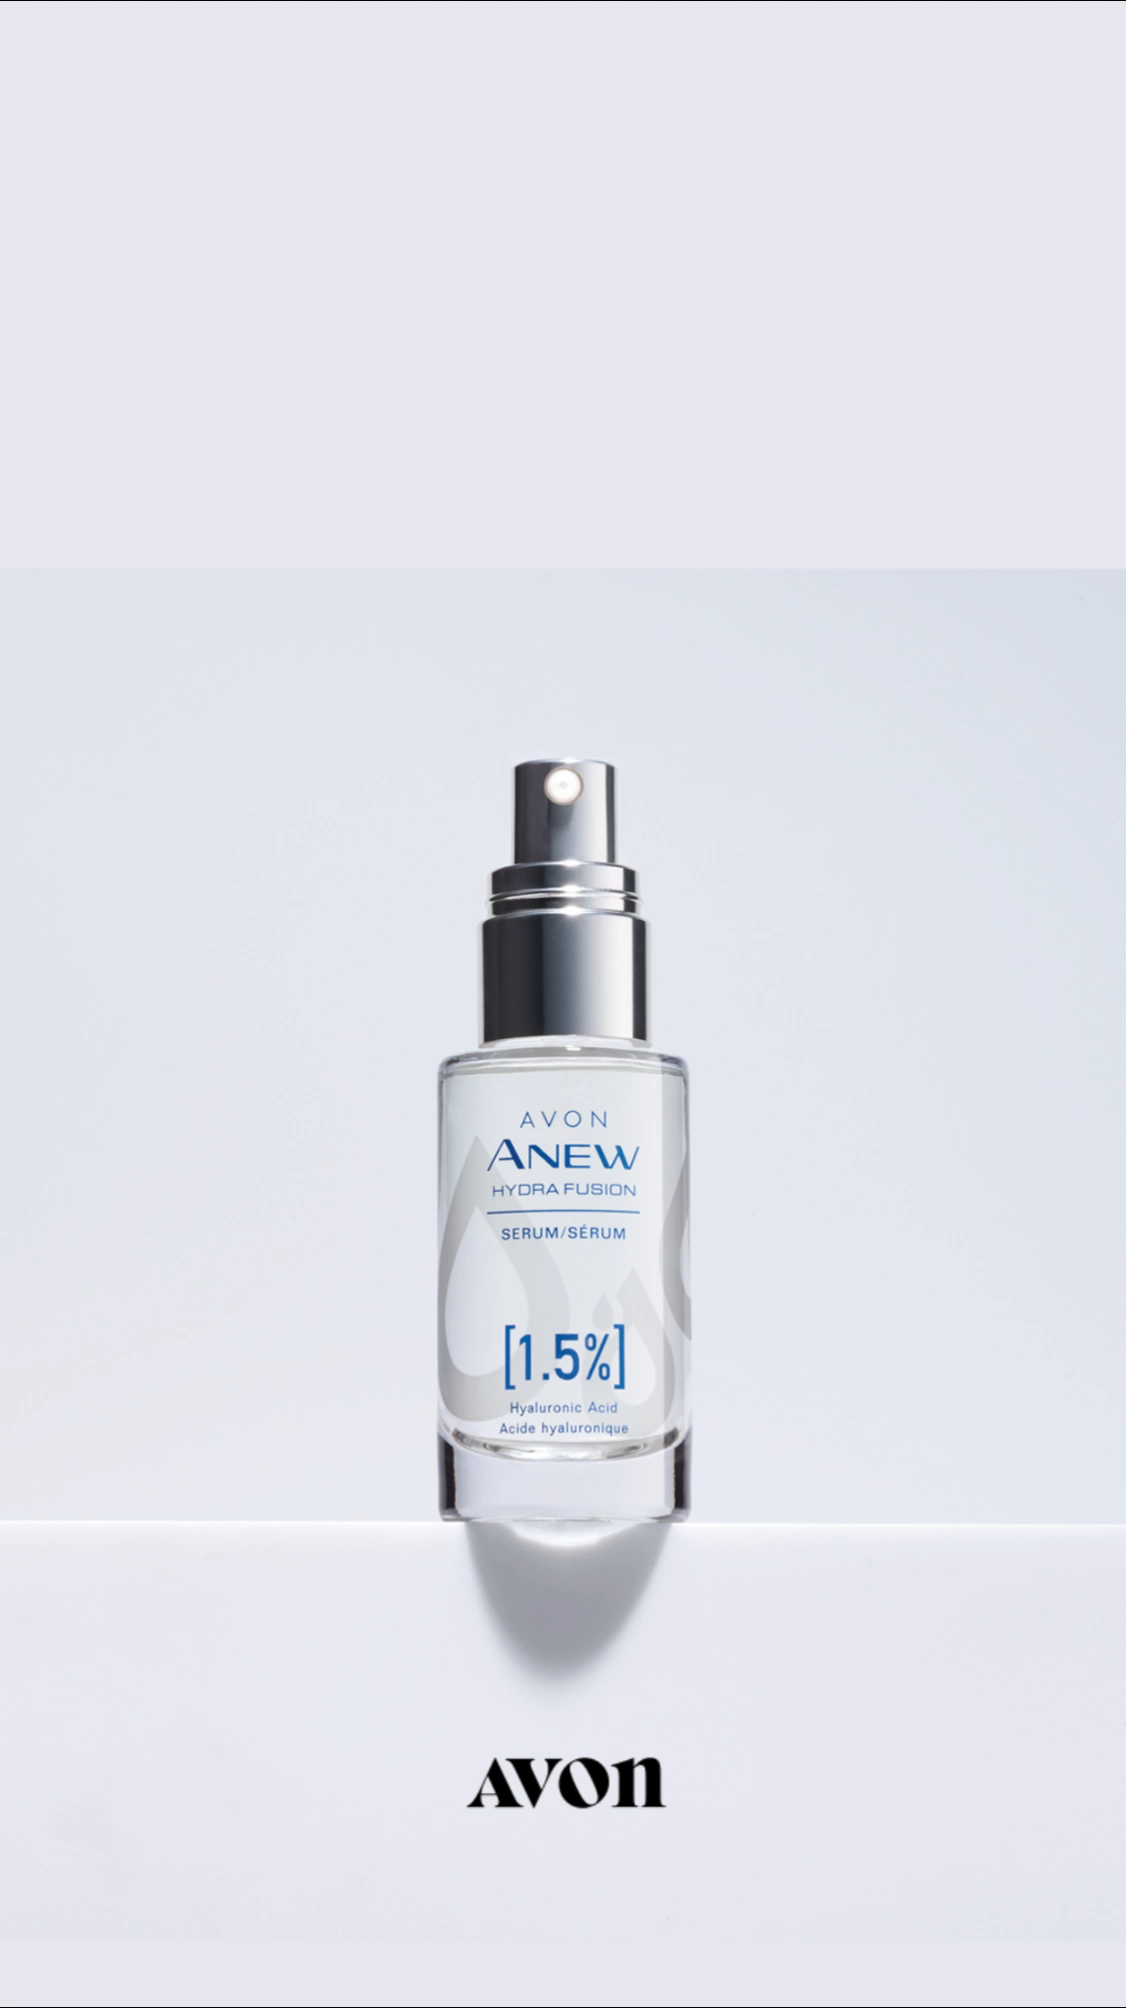 😍Dry Skin on Face? Here's a Remedy Product! It's your rescue treatment on how to get rid of dry flaky skin on your face. This skincare product delivers overall deep hydration with hyaluronic acid to reduce fine lines. Shop the Avon Hydra Fusion Serum online with free shipping on $40 orders. #dryskin #dryskinremedies #dryskinrelief #skincareroutine #avon #avonanew #hydrafusion